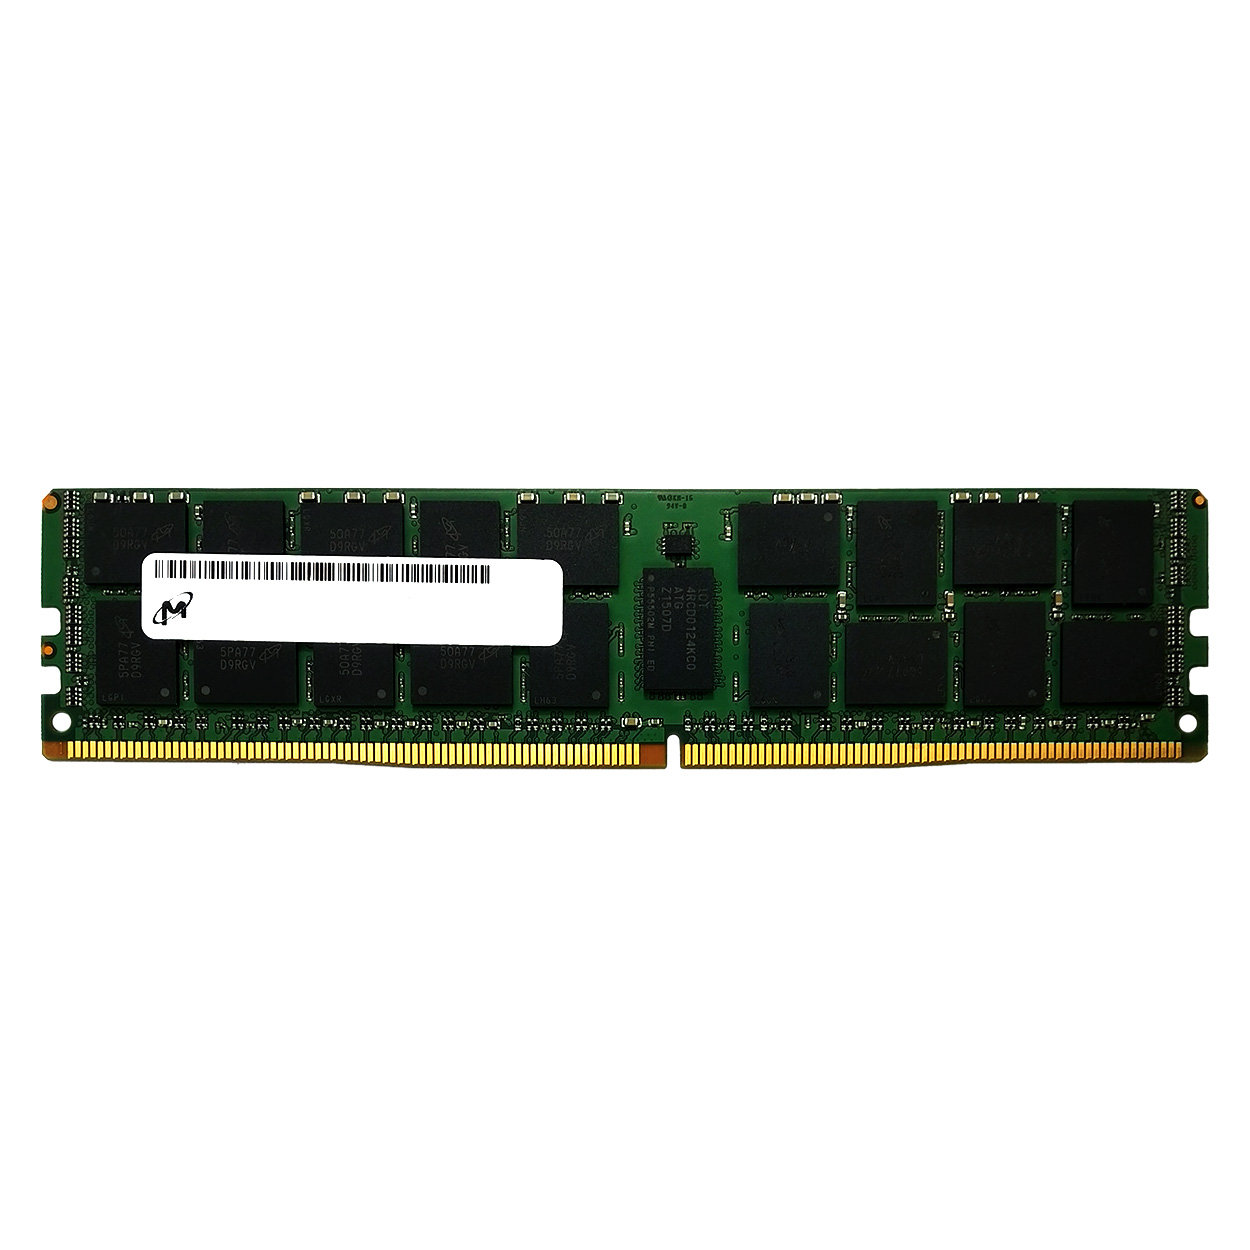 Micron 16GB DDR4 PC4-17000 2133MHz  SERVER RAM MTA36ASF2G72PZ-2G1A2IK